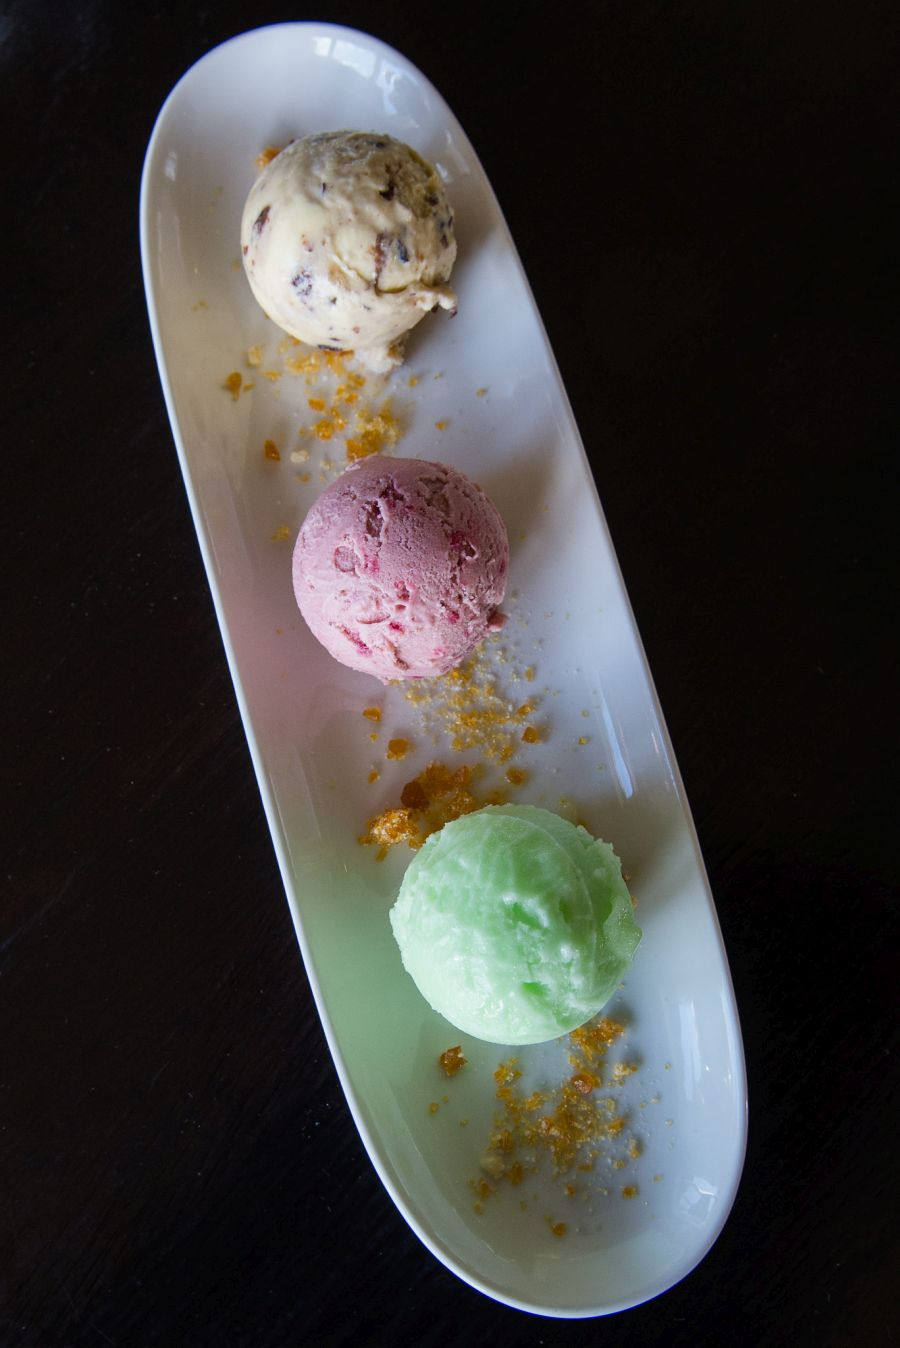 Top to bottom: Fruit mince ice cream, berry ice cream and apple sorbet (NZ$12 for three scoops, selection changes daily)